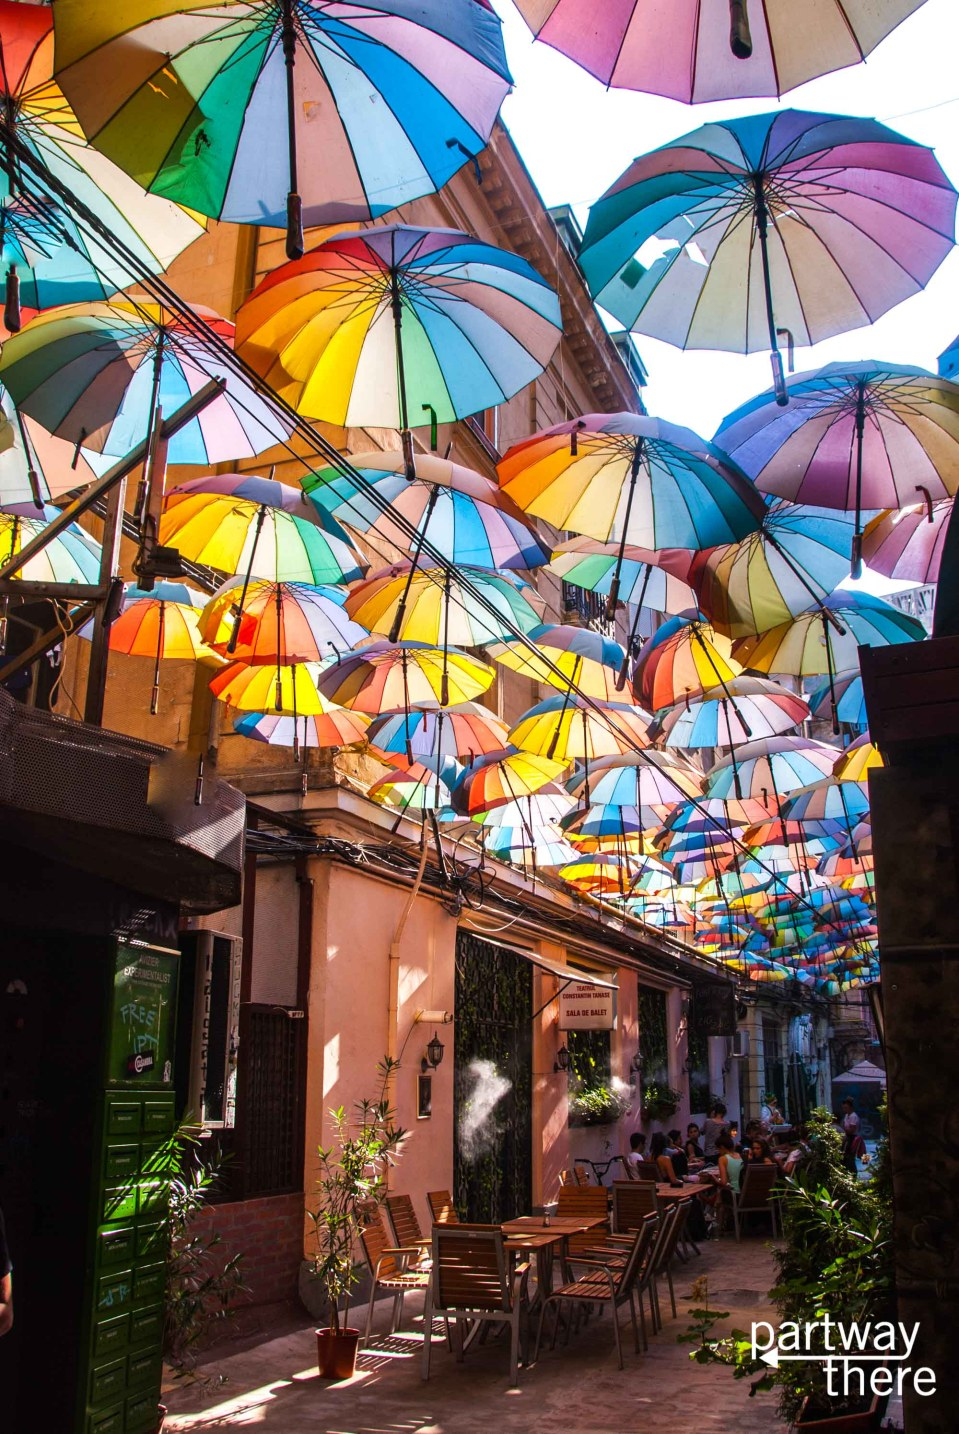 Rainbow umbrella alley in Bucharest